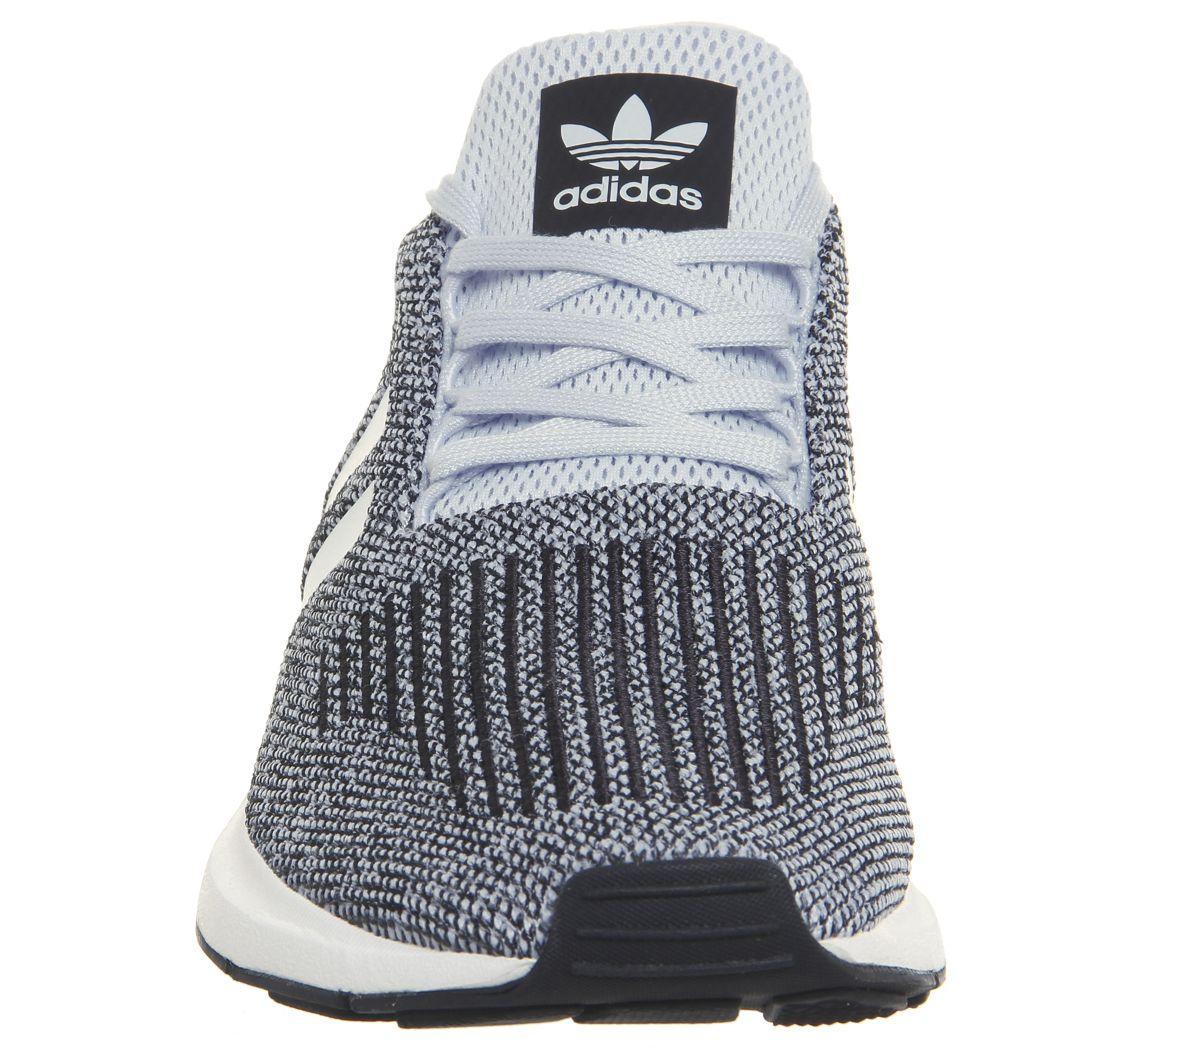 41b323c961e14 adidas Swift Run Trainers Aero Blue White - Unisex Sports